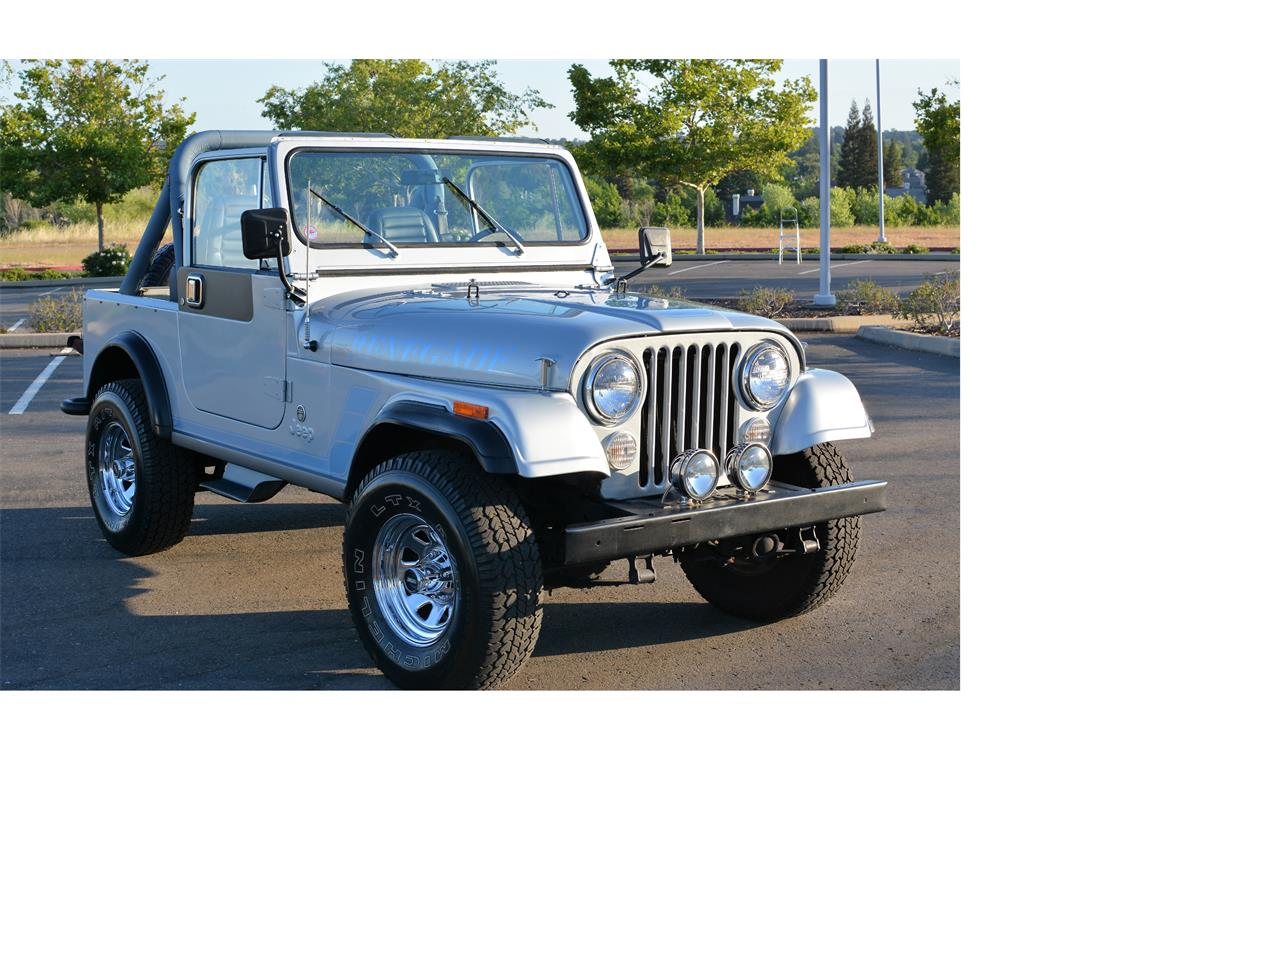 Large Picture of '83 Wrangler - $17,500.00 - LHRY